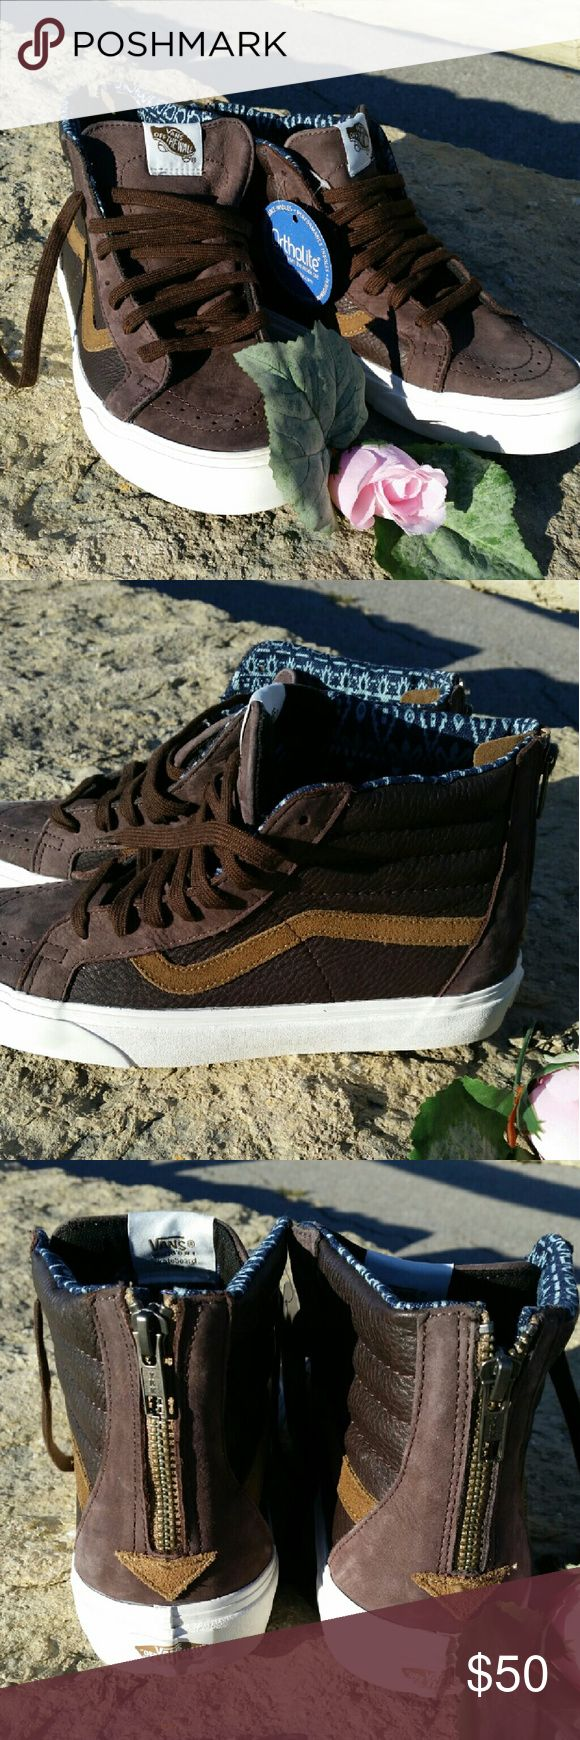 """Unisex Vans """"Off The Wall"""" NWT high top tennis shoes.  """"World's number one Skateboard Shoe"""" Sizes Women 10.0 -Men 8.5 Leather top, inside in a navy blue and light blue aztec print. Smoke and pet free home. Vans Shoes Athletic Shoes"""